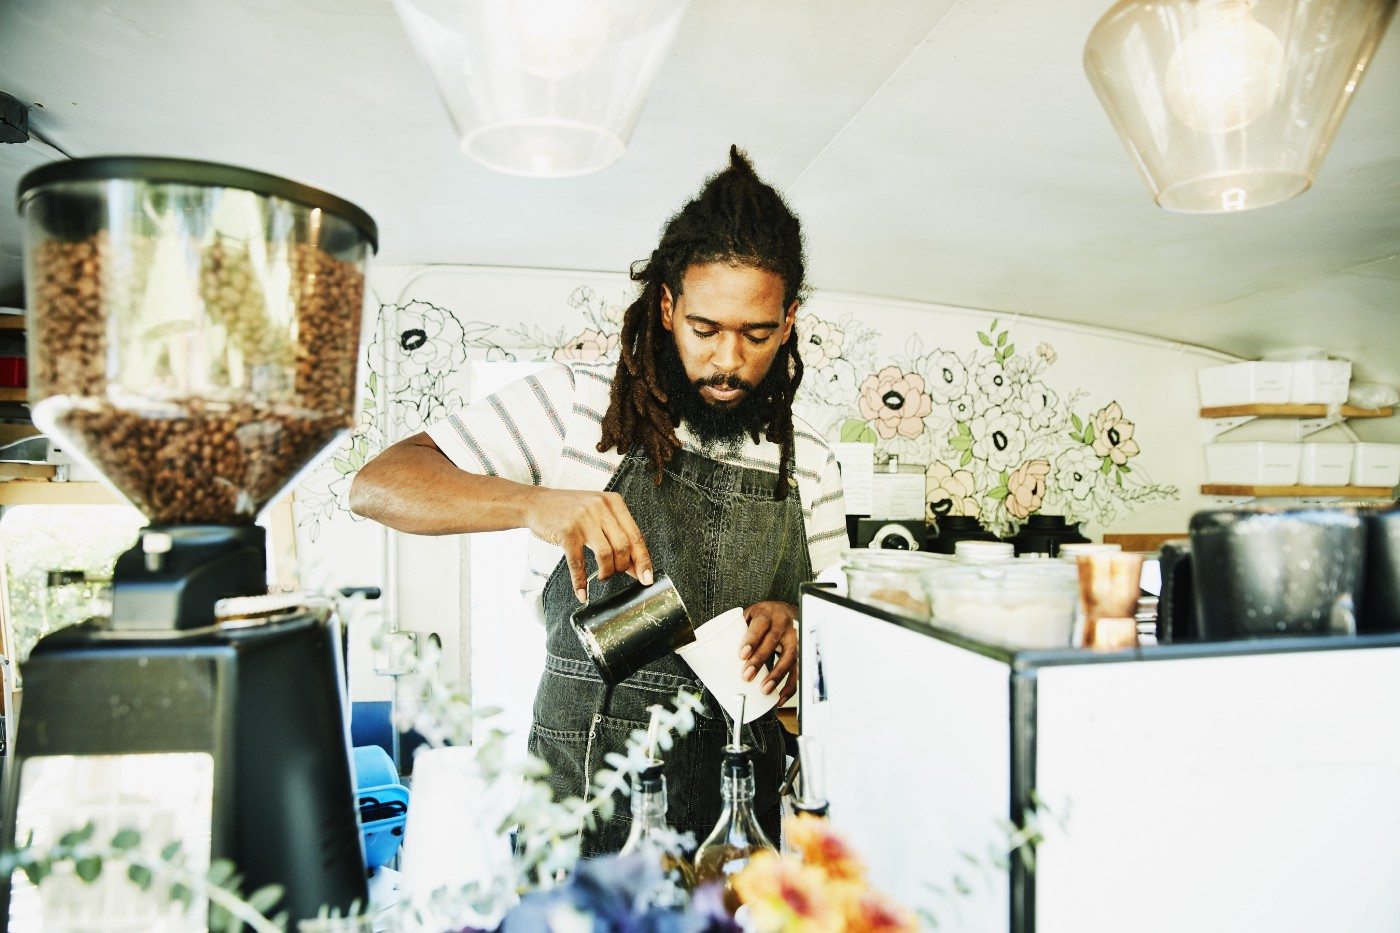 A Black barista, their long locs tied back, pours milk into a coffee cup behind the counter of a coffee truck.